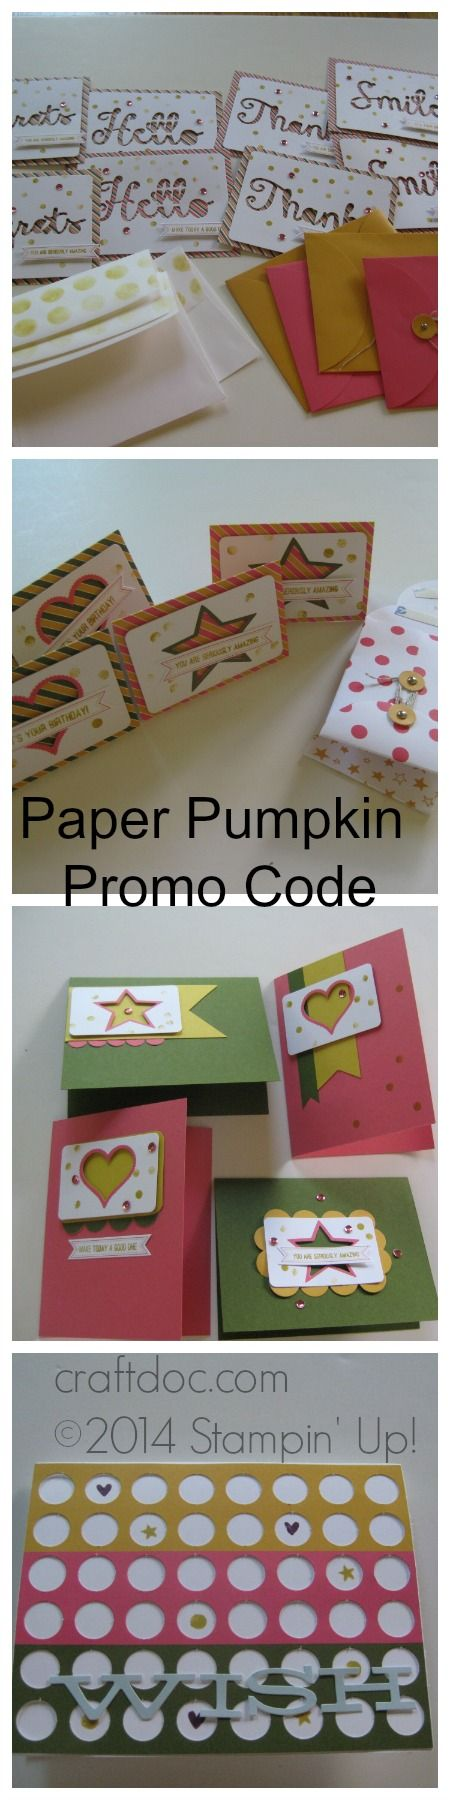 august craft ideas 36 best august 2014 paper pumpkin images on 1072